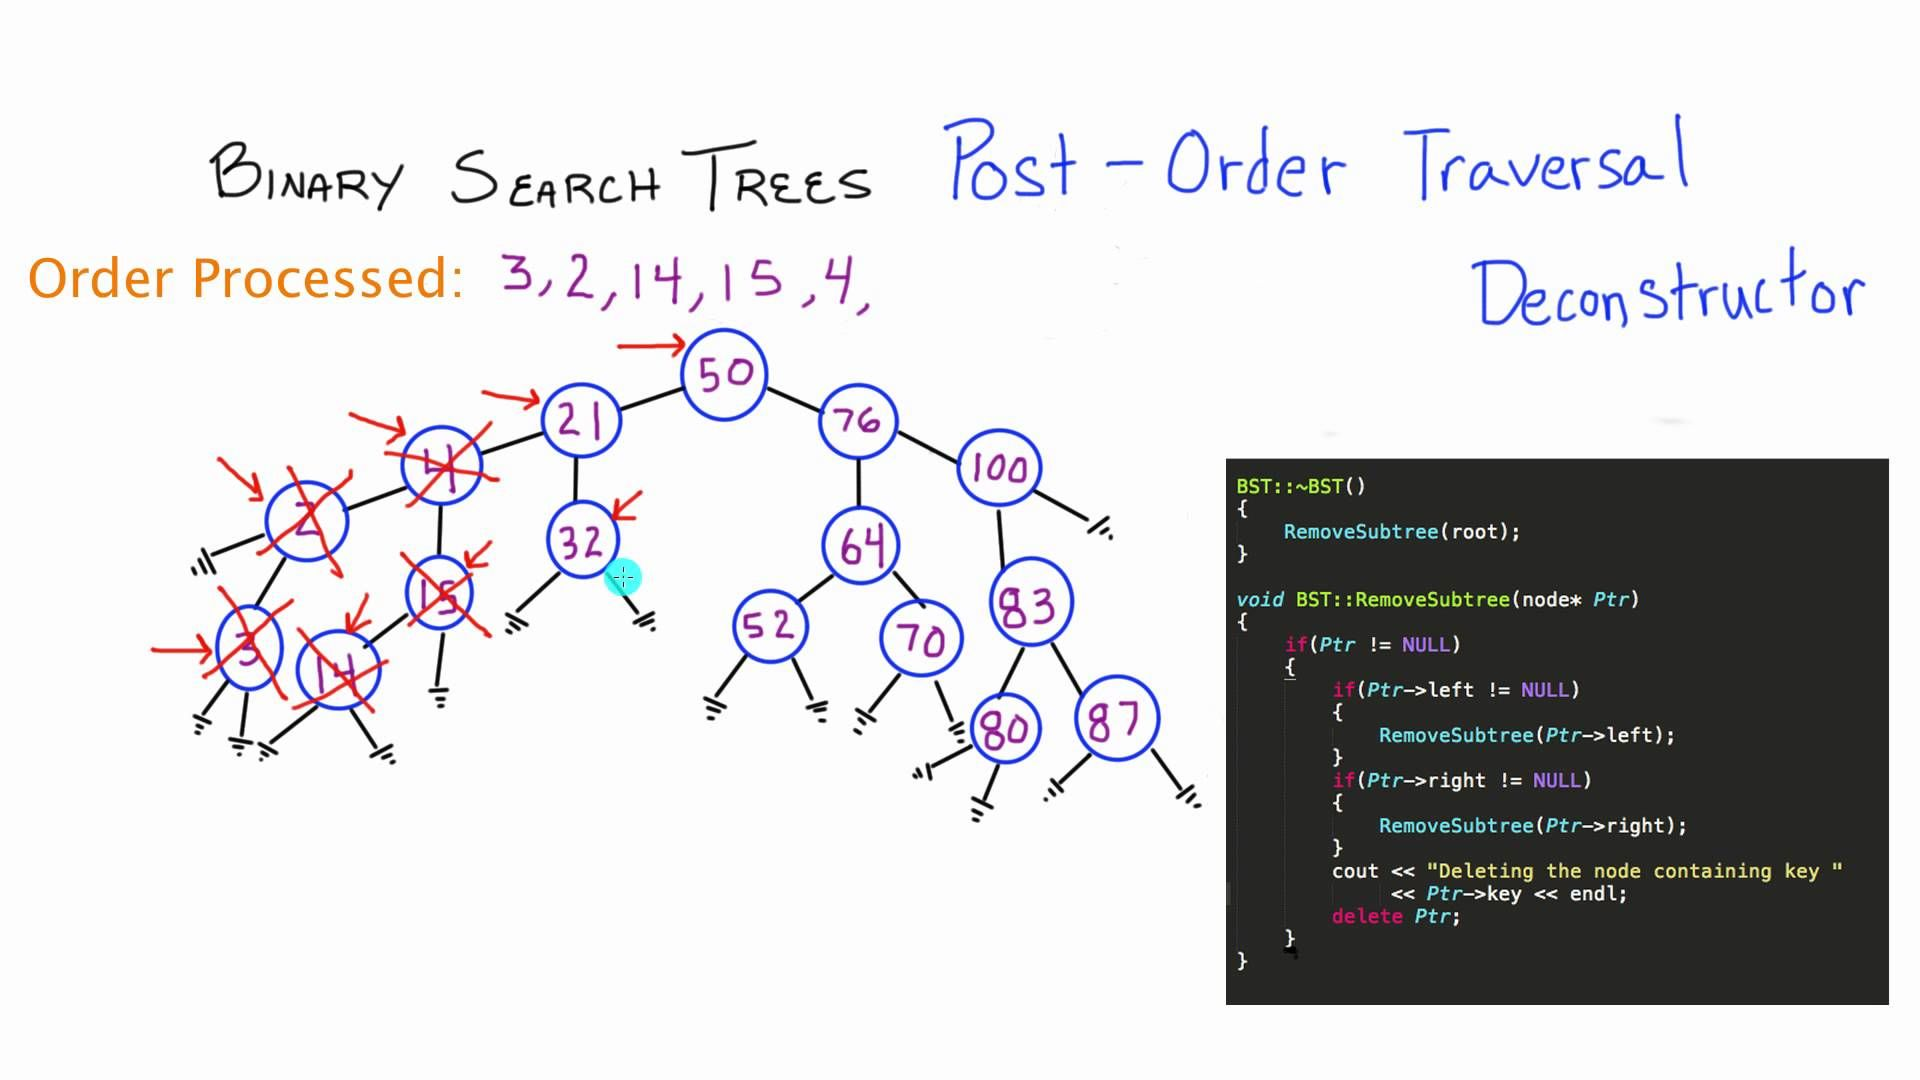 Post Order Traversal Deconstructor Example - Binary Search